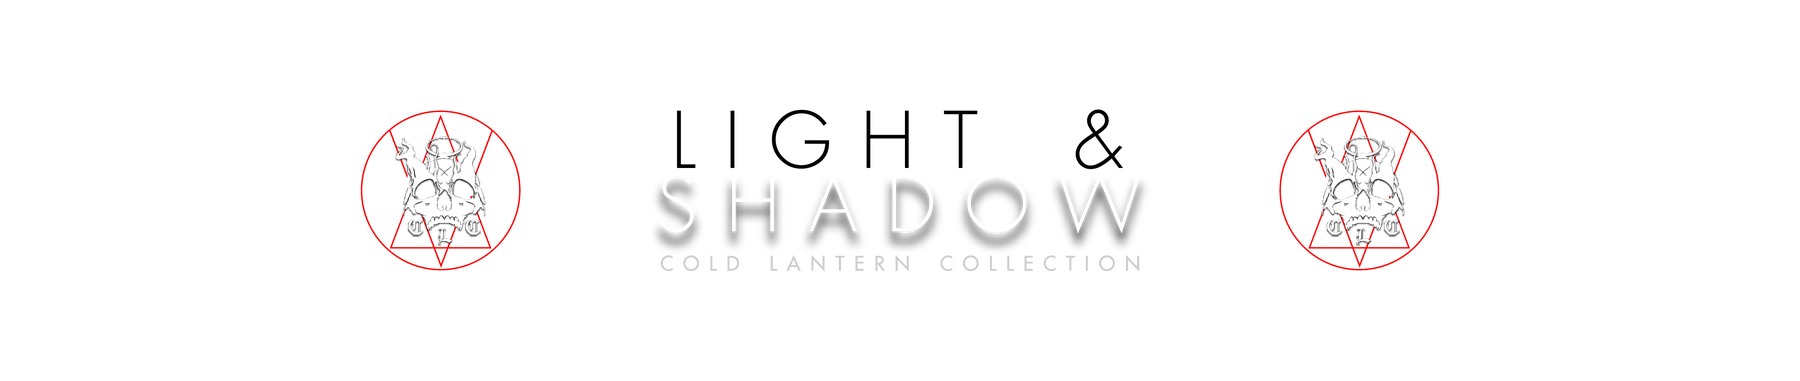 Light & Shadow by Cold Lantern Collection